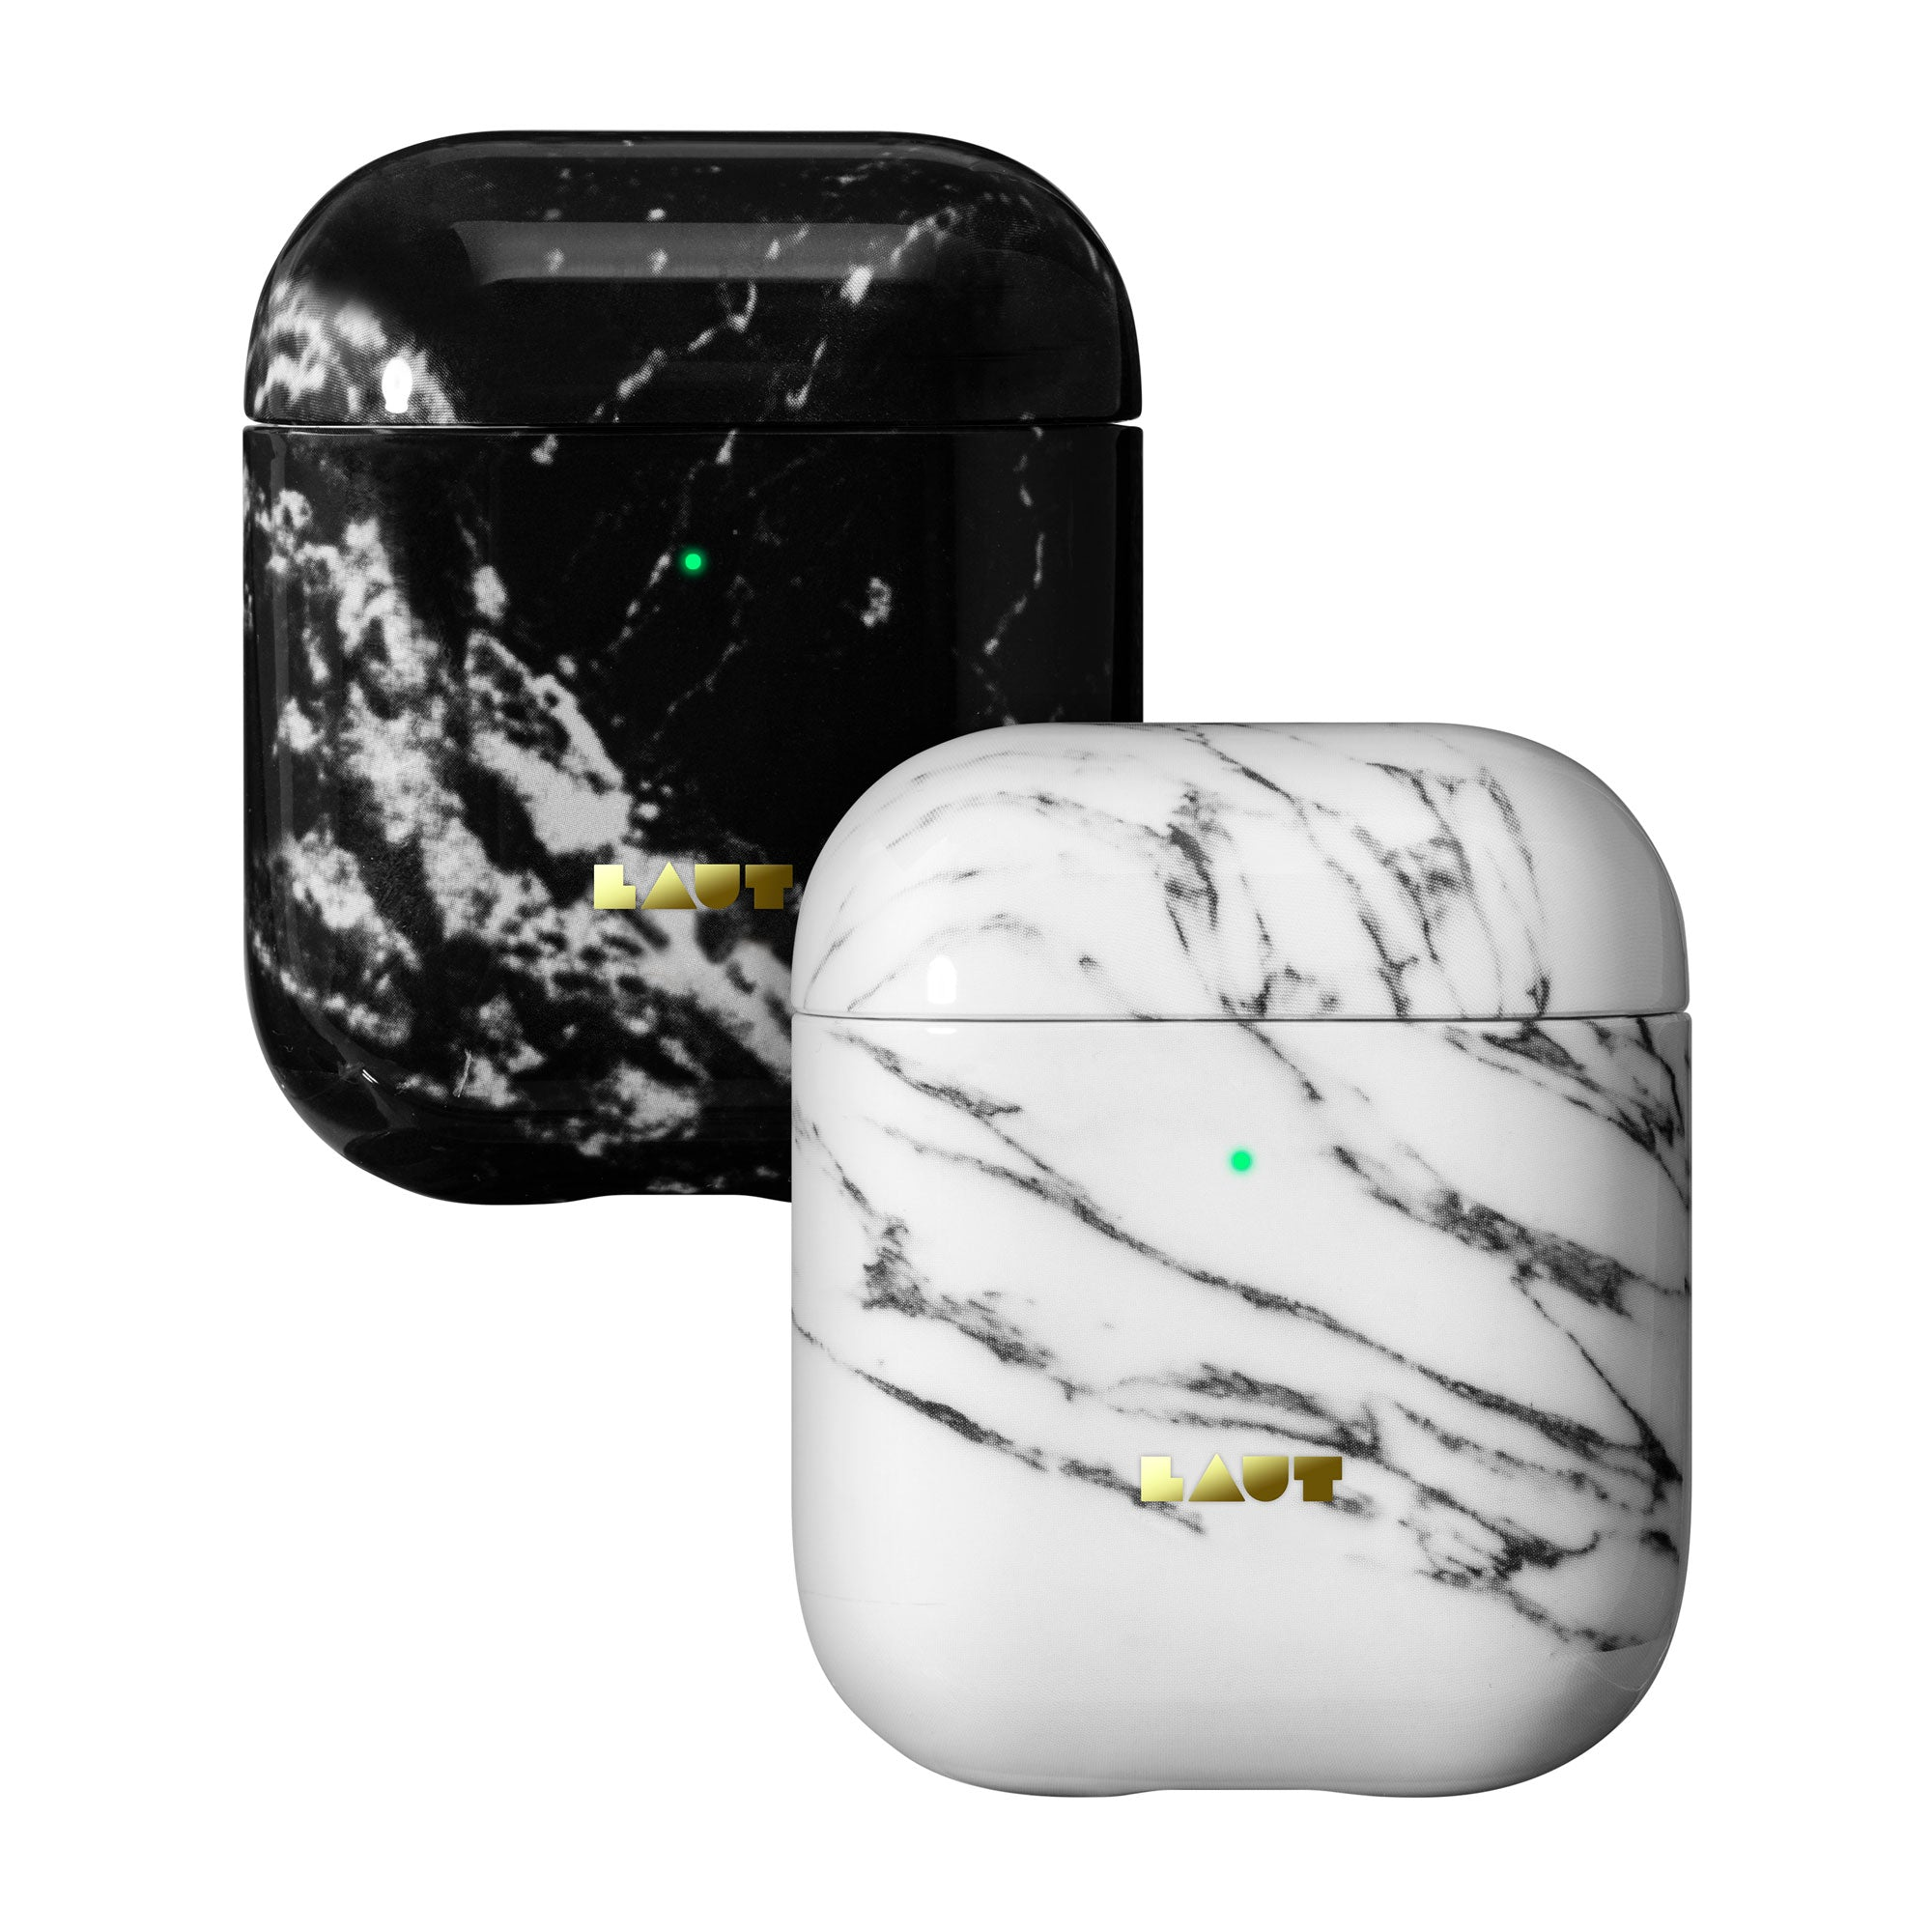 LAUT-HUEX ELEMENTS for AirPods-Case-AirPods